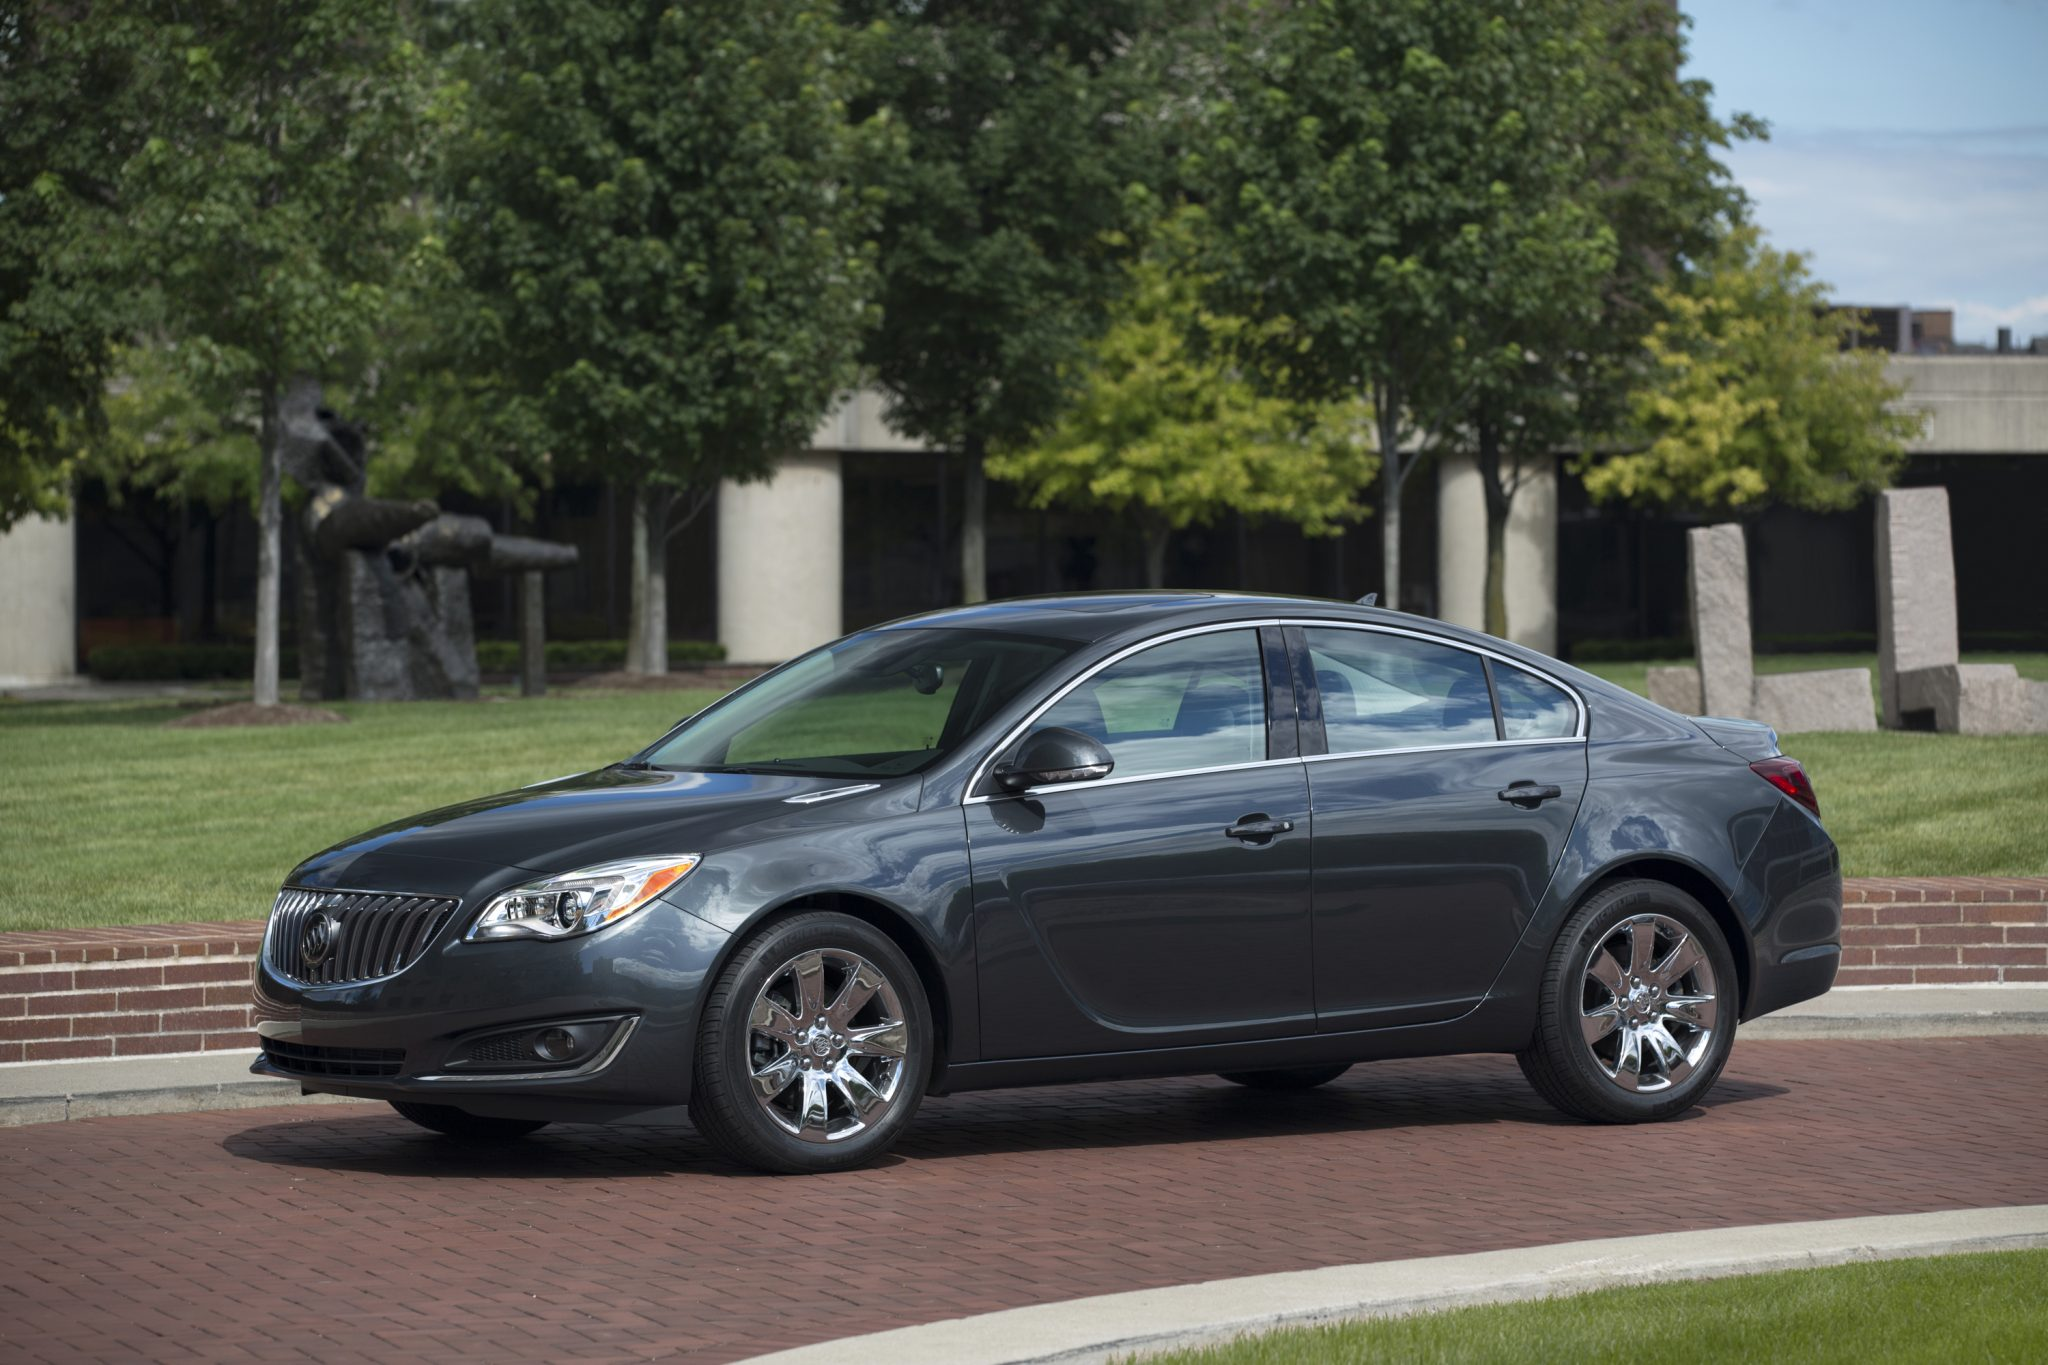 The 2015 Buick Regal helped boost Buick's June 2014 sales.